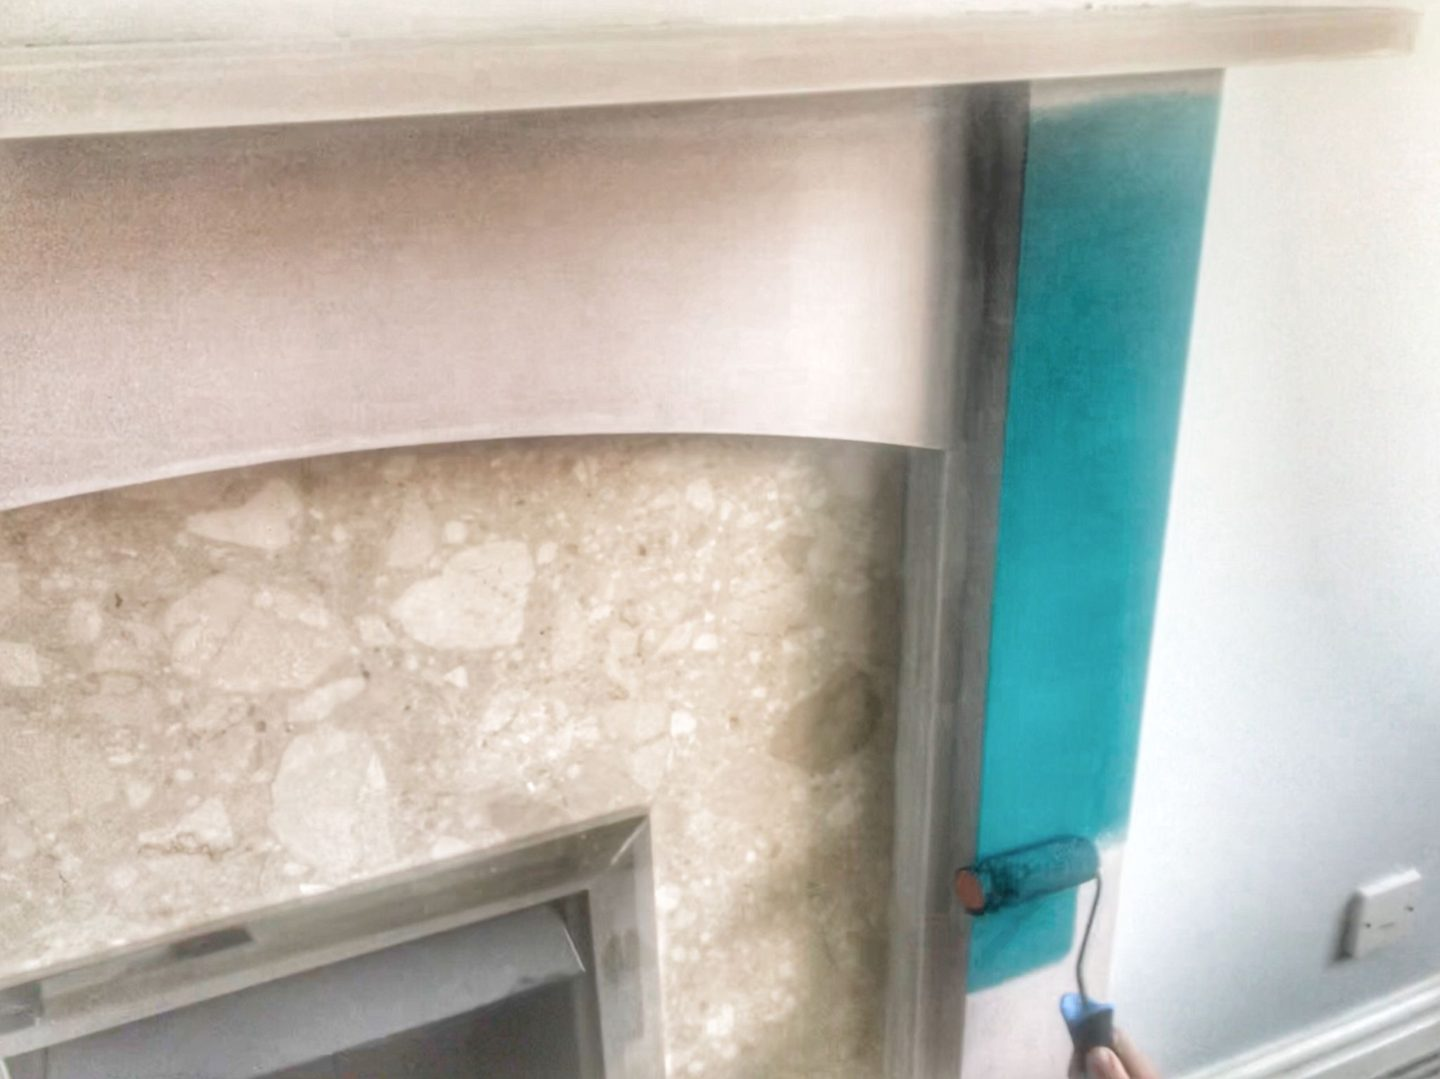 painting a fireplace with the teal paint using a roller